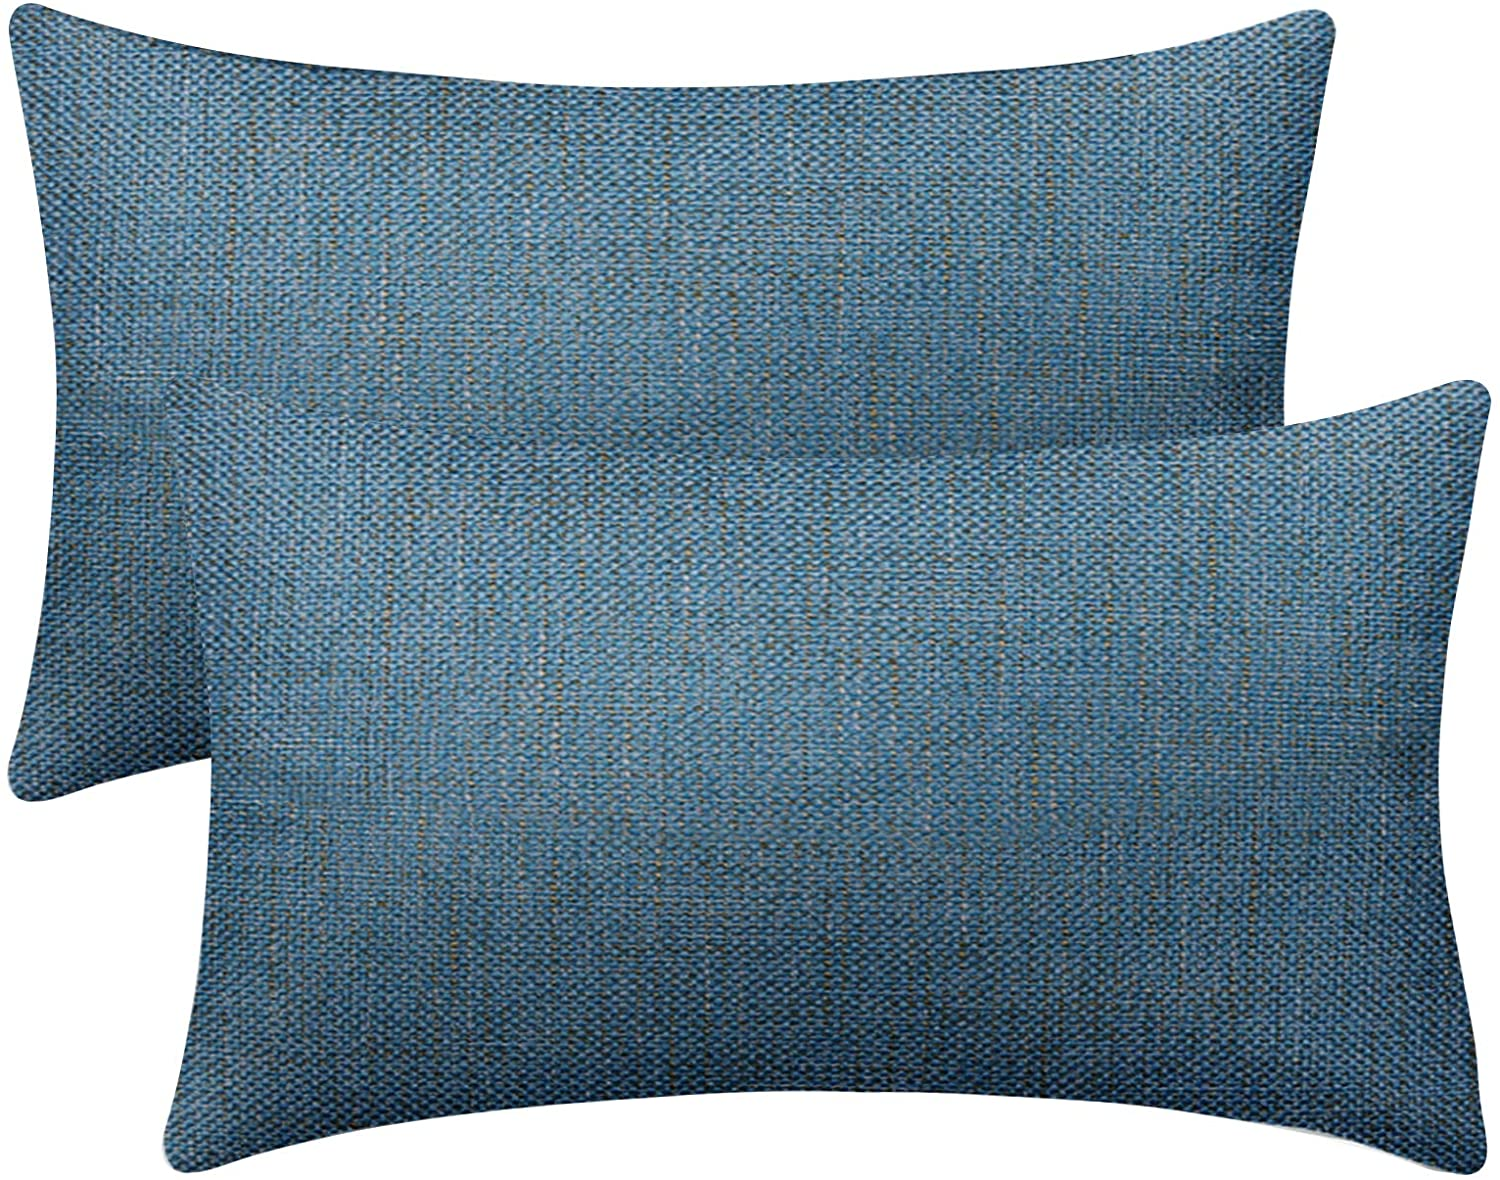 Sinpooo Set of 2 Cotton Linen Throw Pillow Covers Decorative Square Pillowcase Farmhouse Cushion Cover for Sofa Bedroom Car 12 x 20 Inch